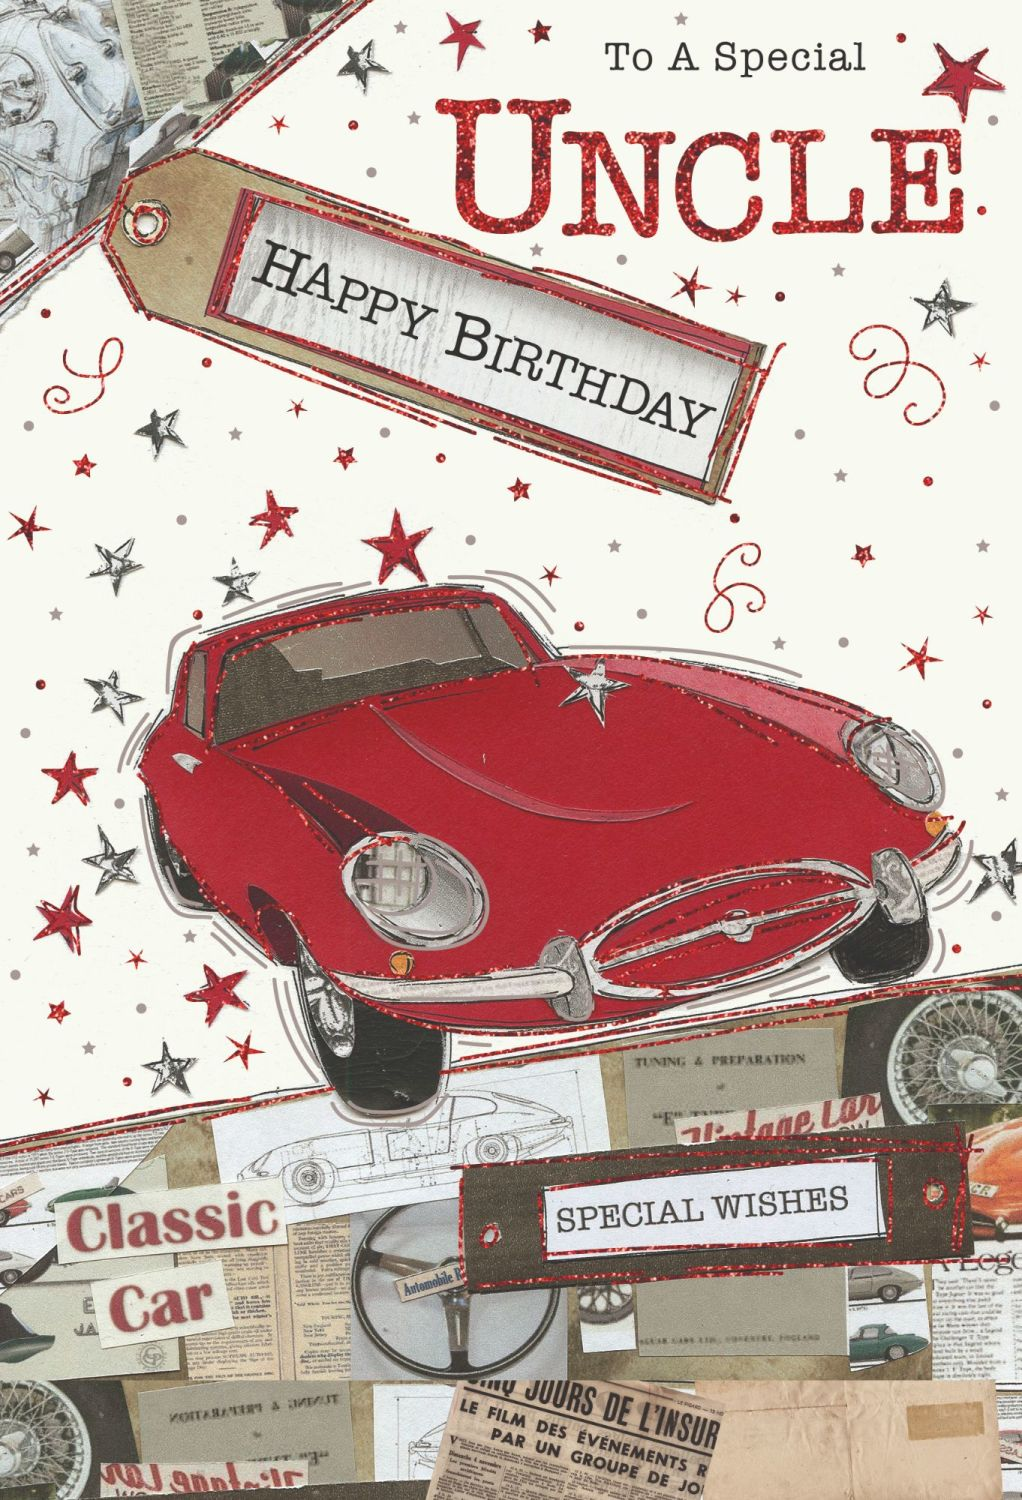 To A Special Uncle Birthday Card - HAPPY BIRTHDAY - Uncle BIRTHDAY Cards -